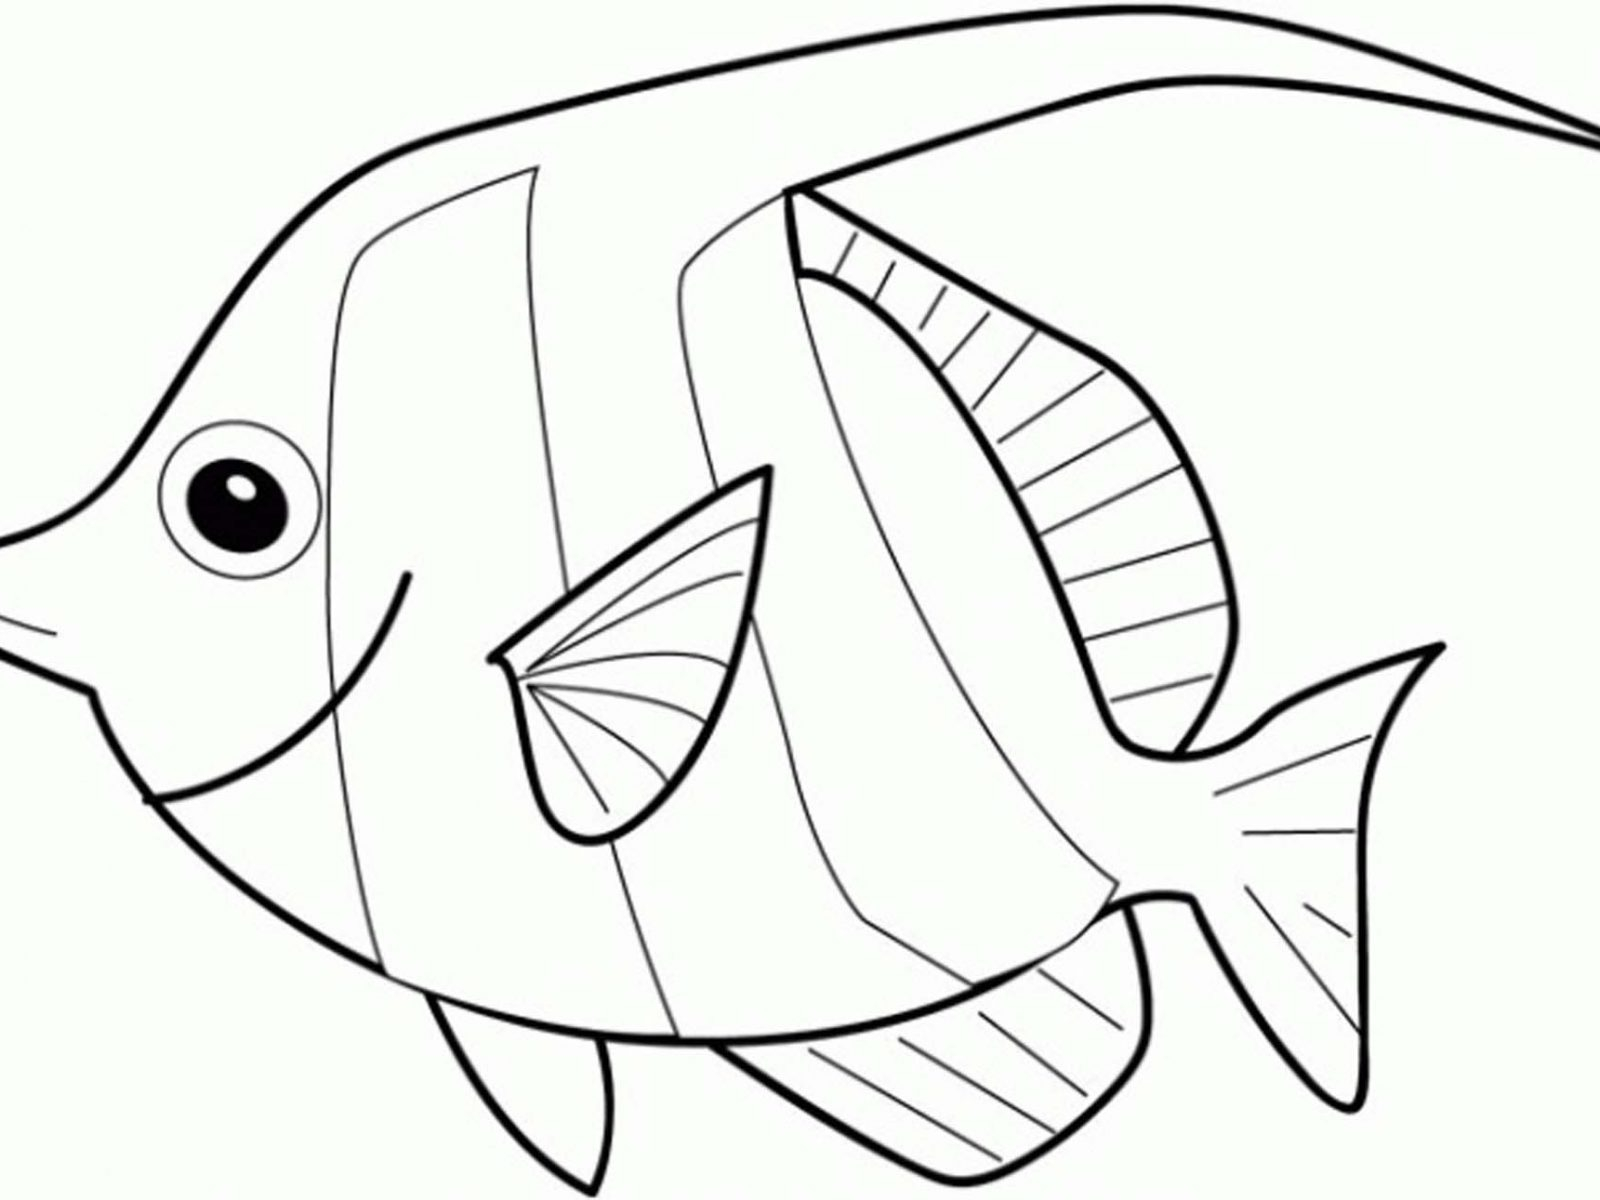 Line Art Of Fish : Goldfish drawing at getdrawings.com free for personal use